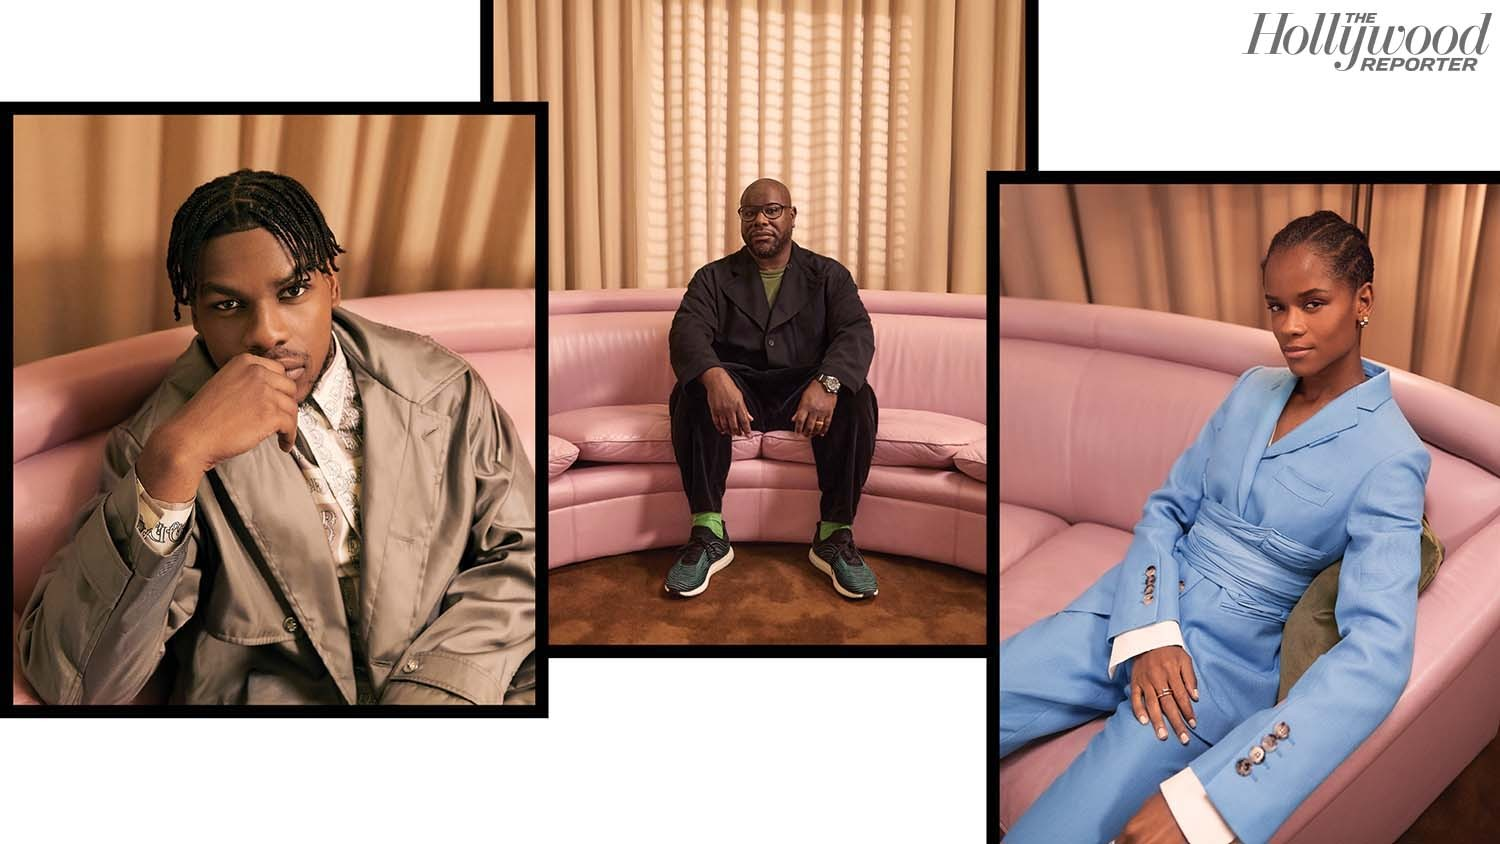 """""""We Are the Pillar of Something New"""": Steve McQueen, John Boyega and Letitia Wright on the Emotional Journey to Spotlight Black British Life in 'Small Axe'"""